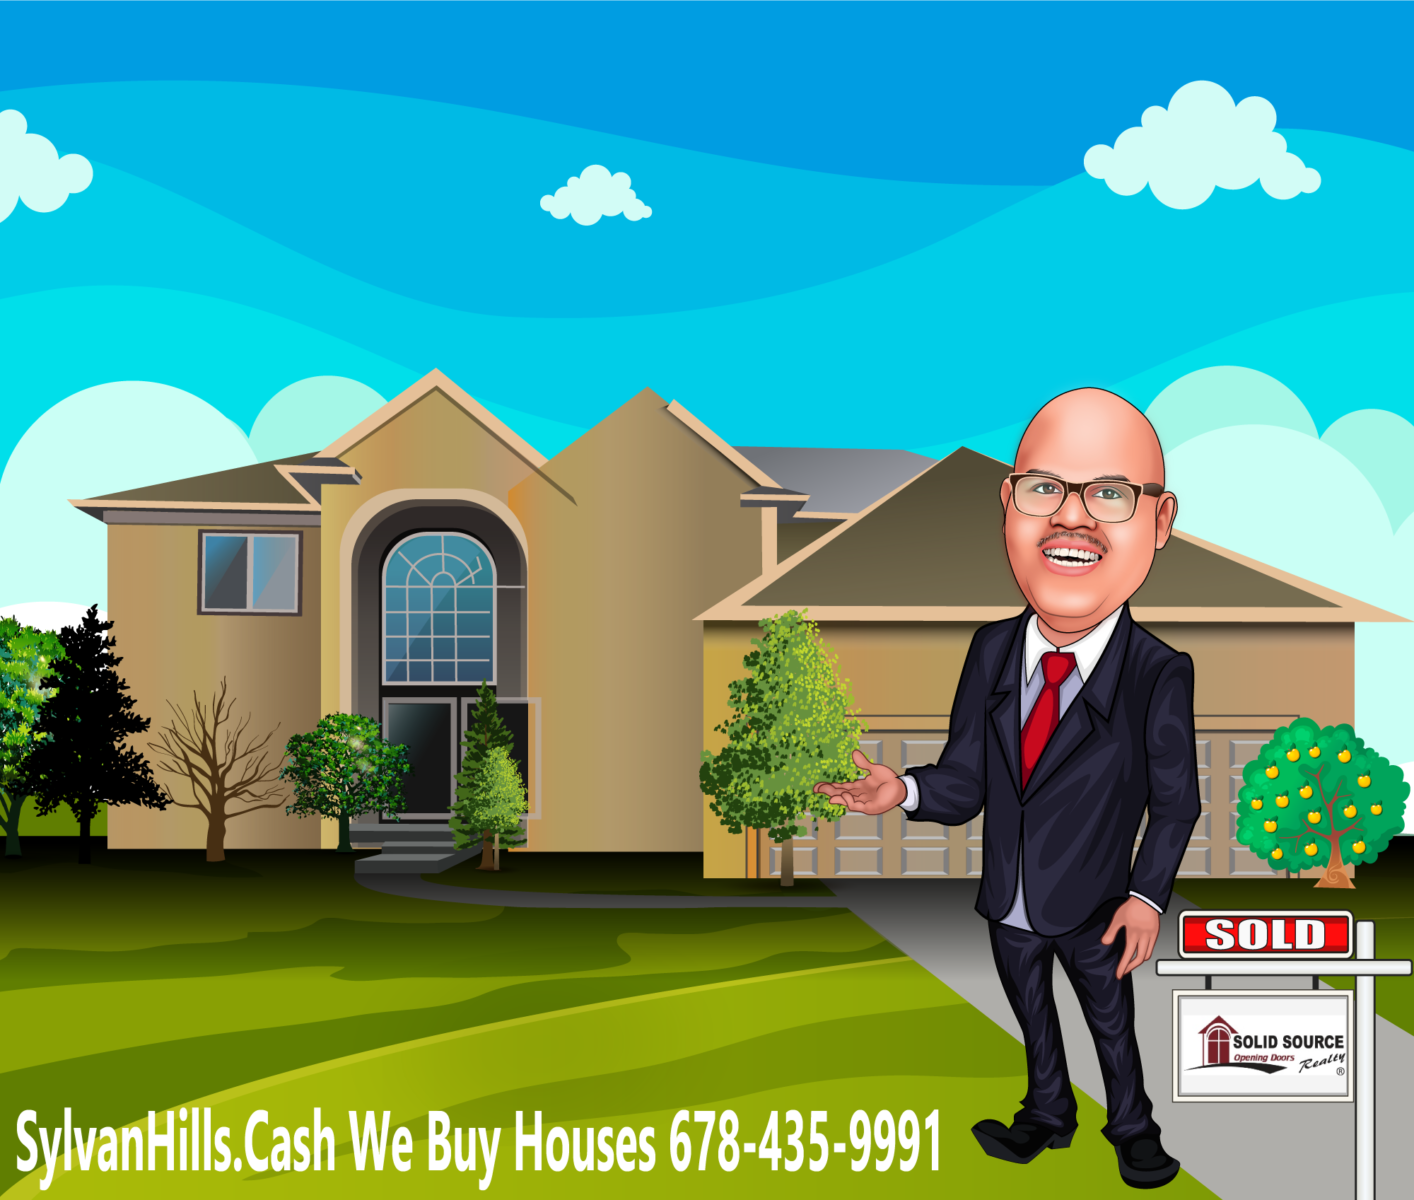 We Buy Houses Cash Sylvan Hills logo